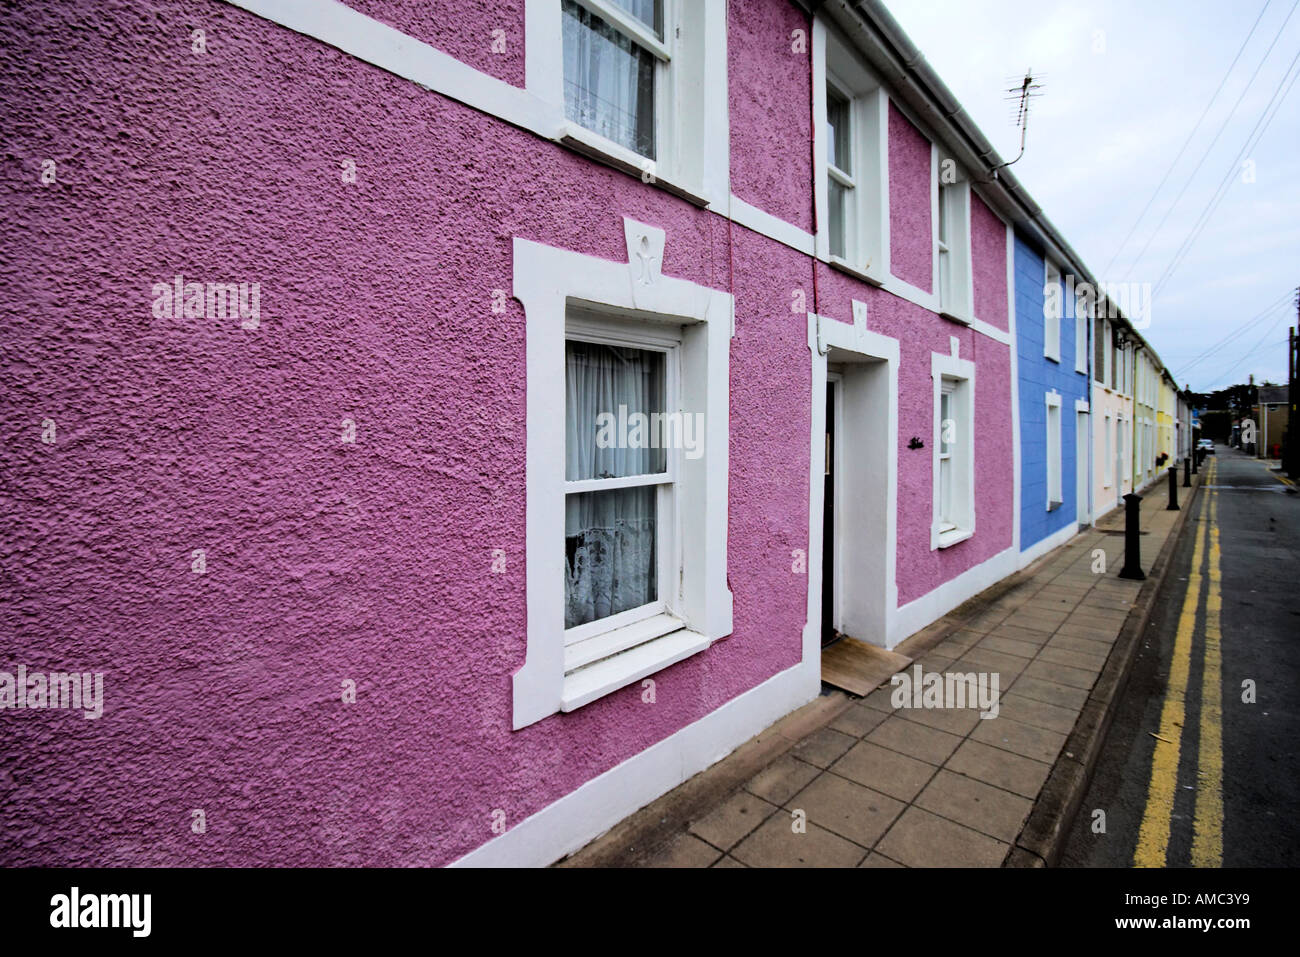 a colourful terraced street in Aberaeron Cardigan Bay Wales - Stock Image